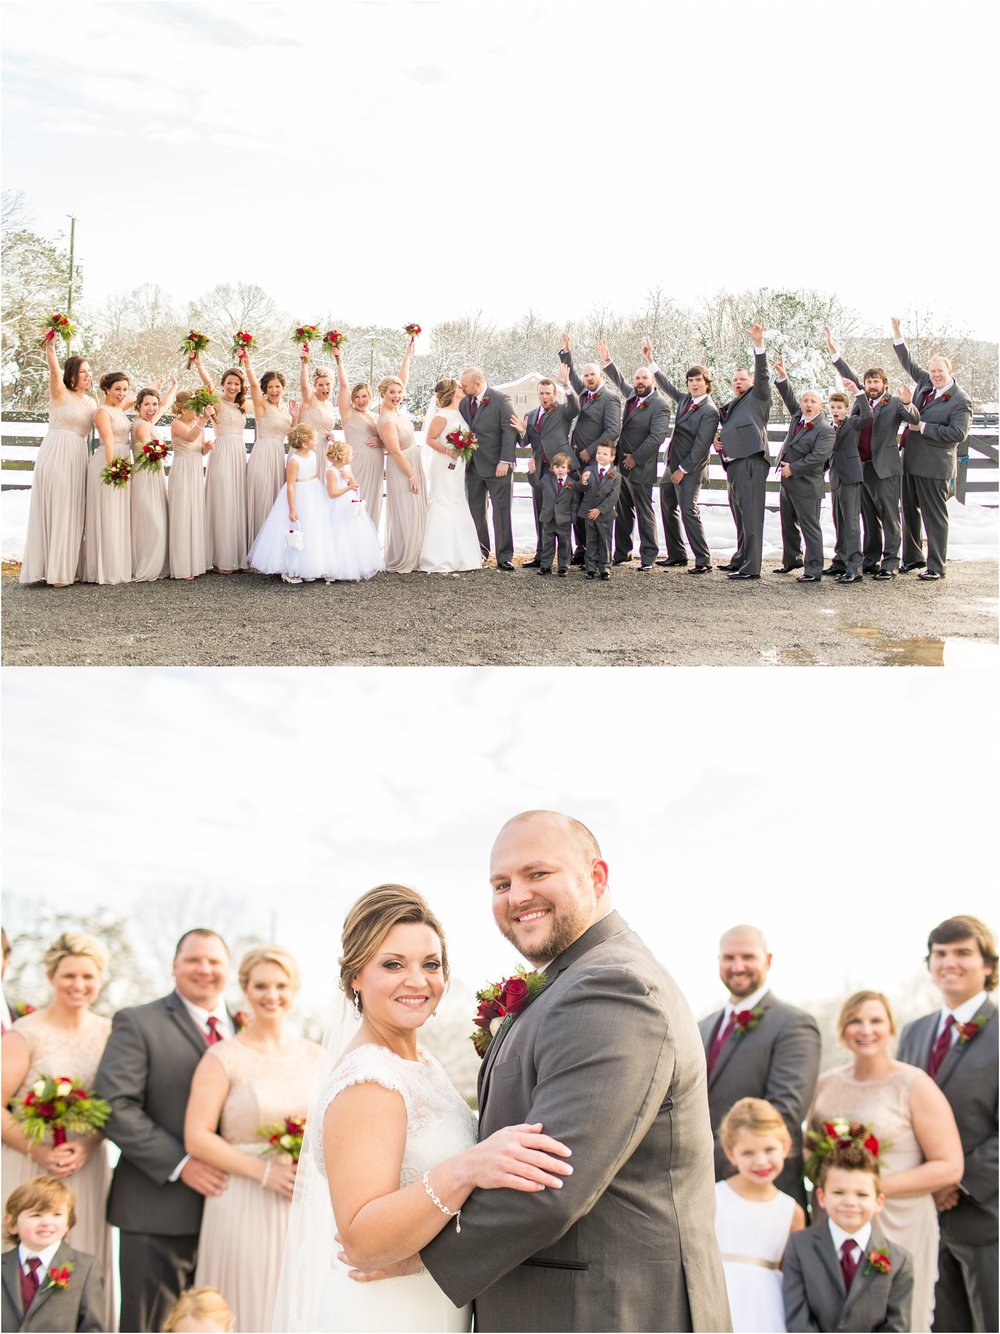 Savannah Eve Photography- Page Wedding Blog-56.jpg